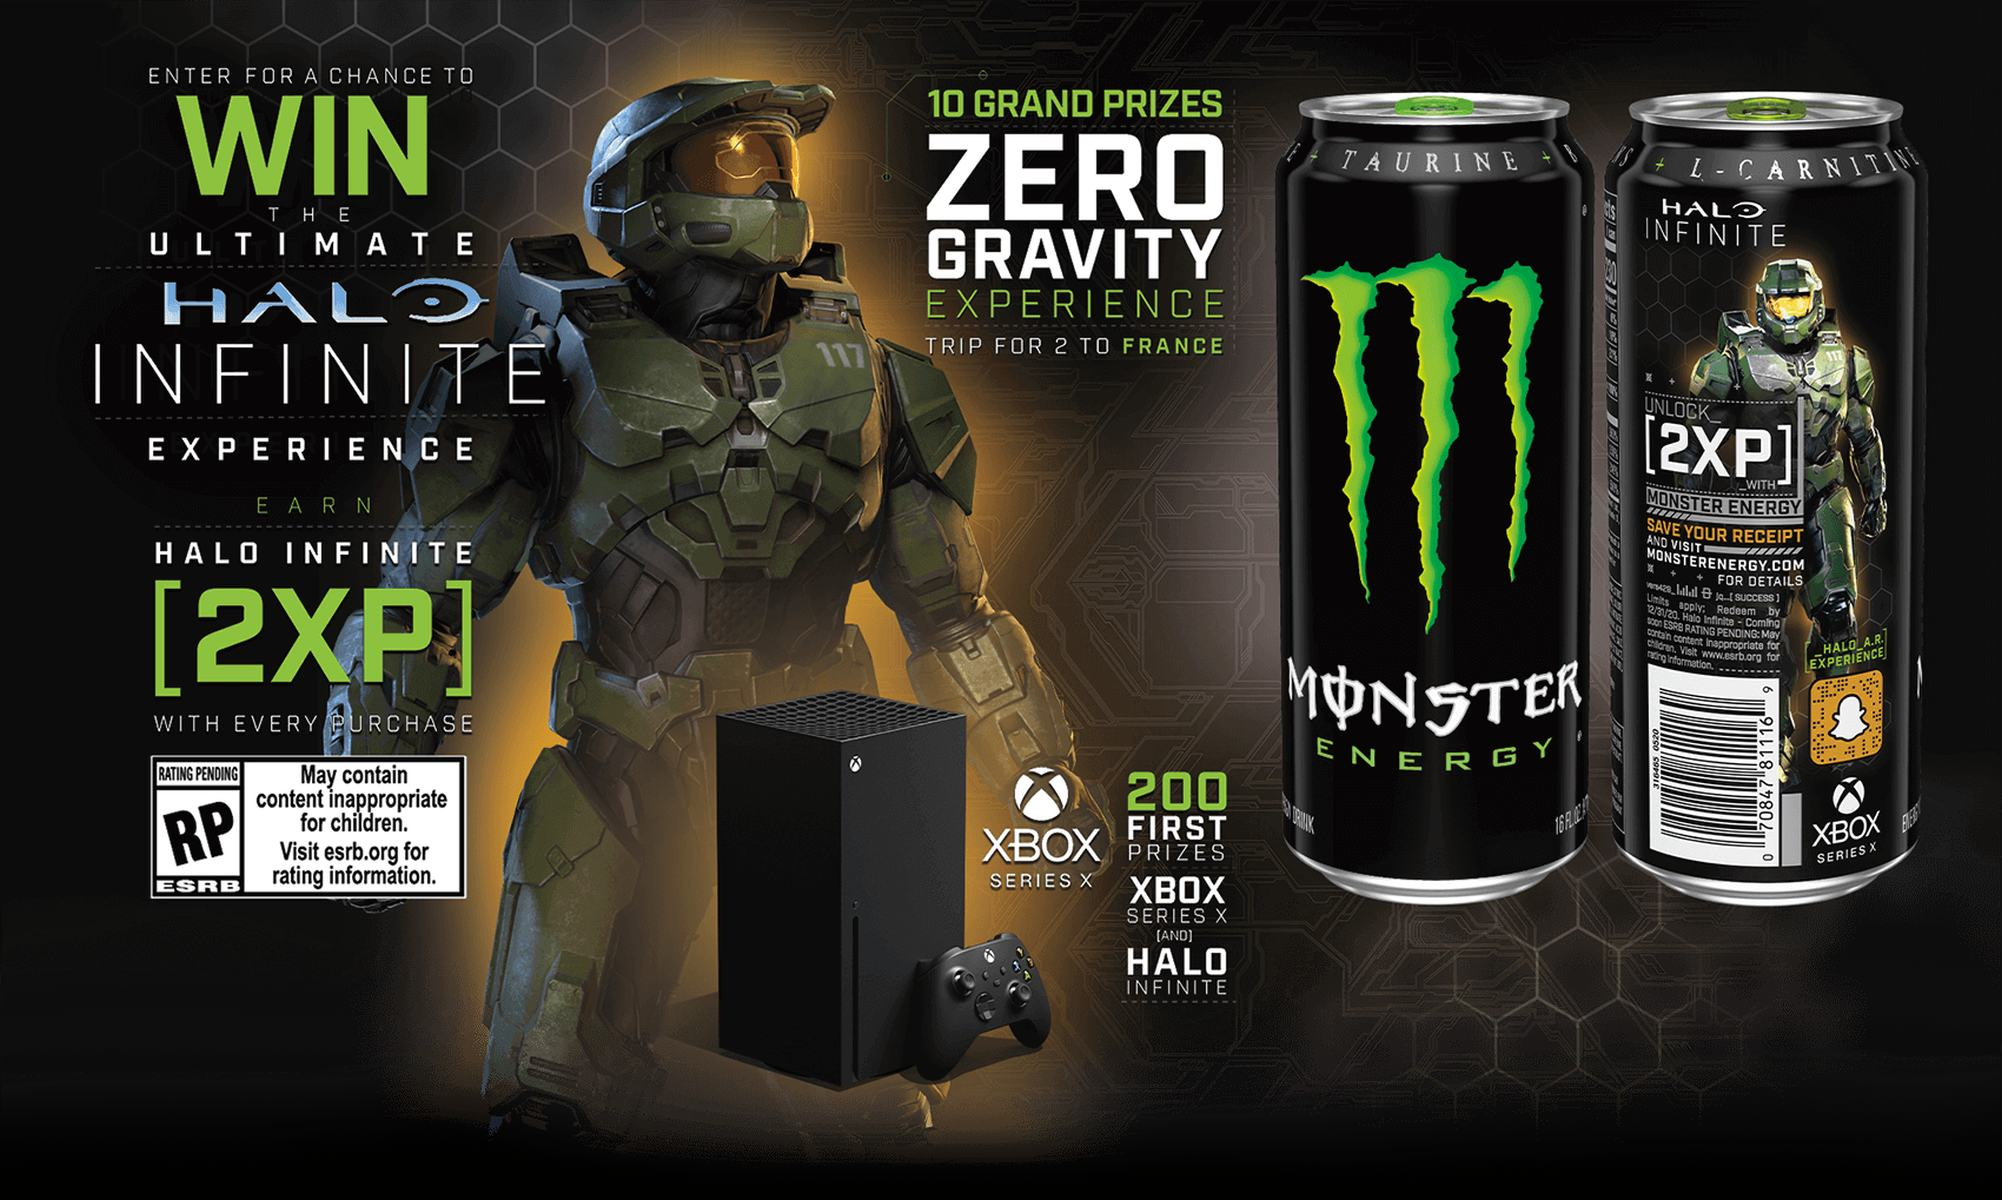 HALO 5 Free Download Monster Energy